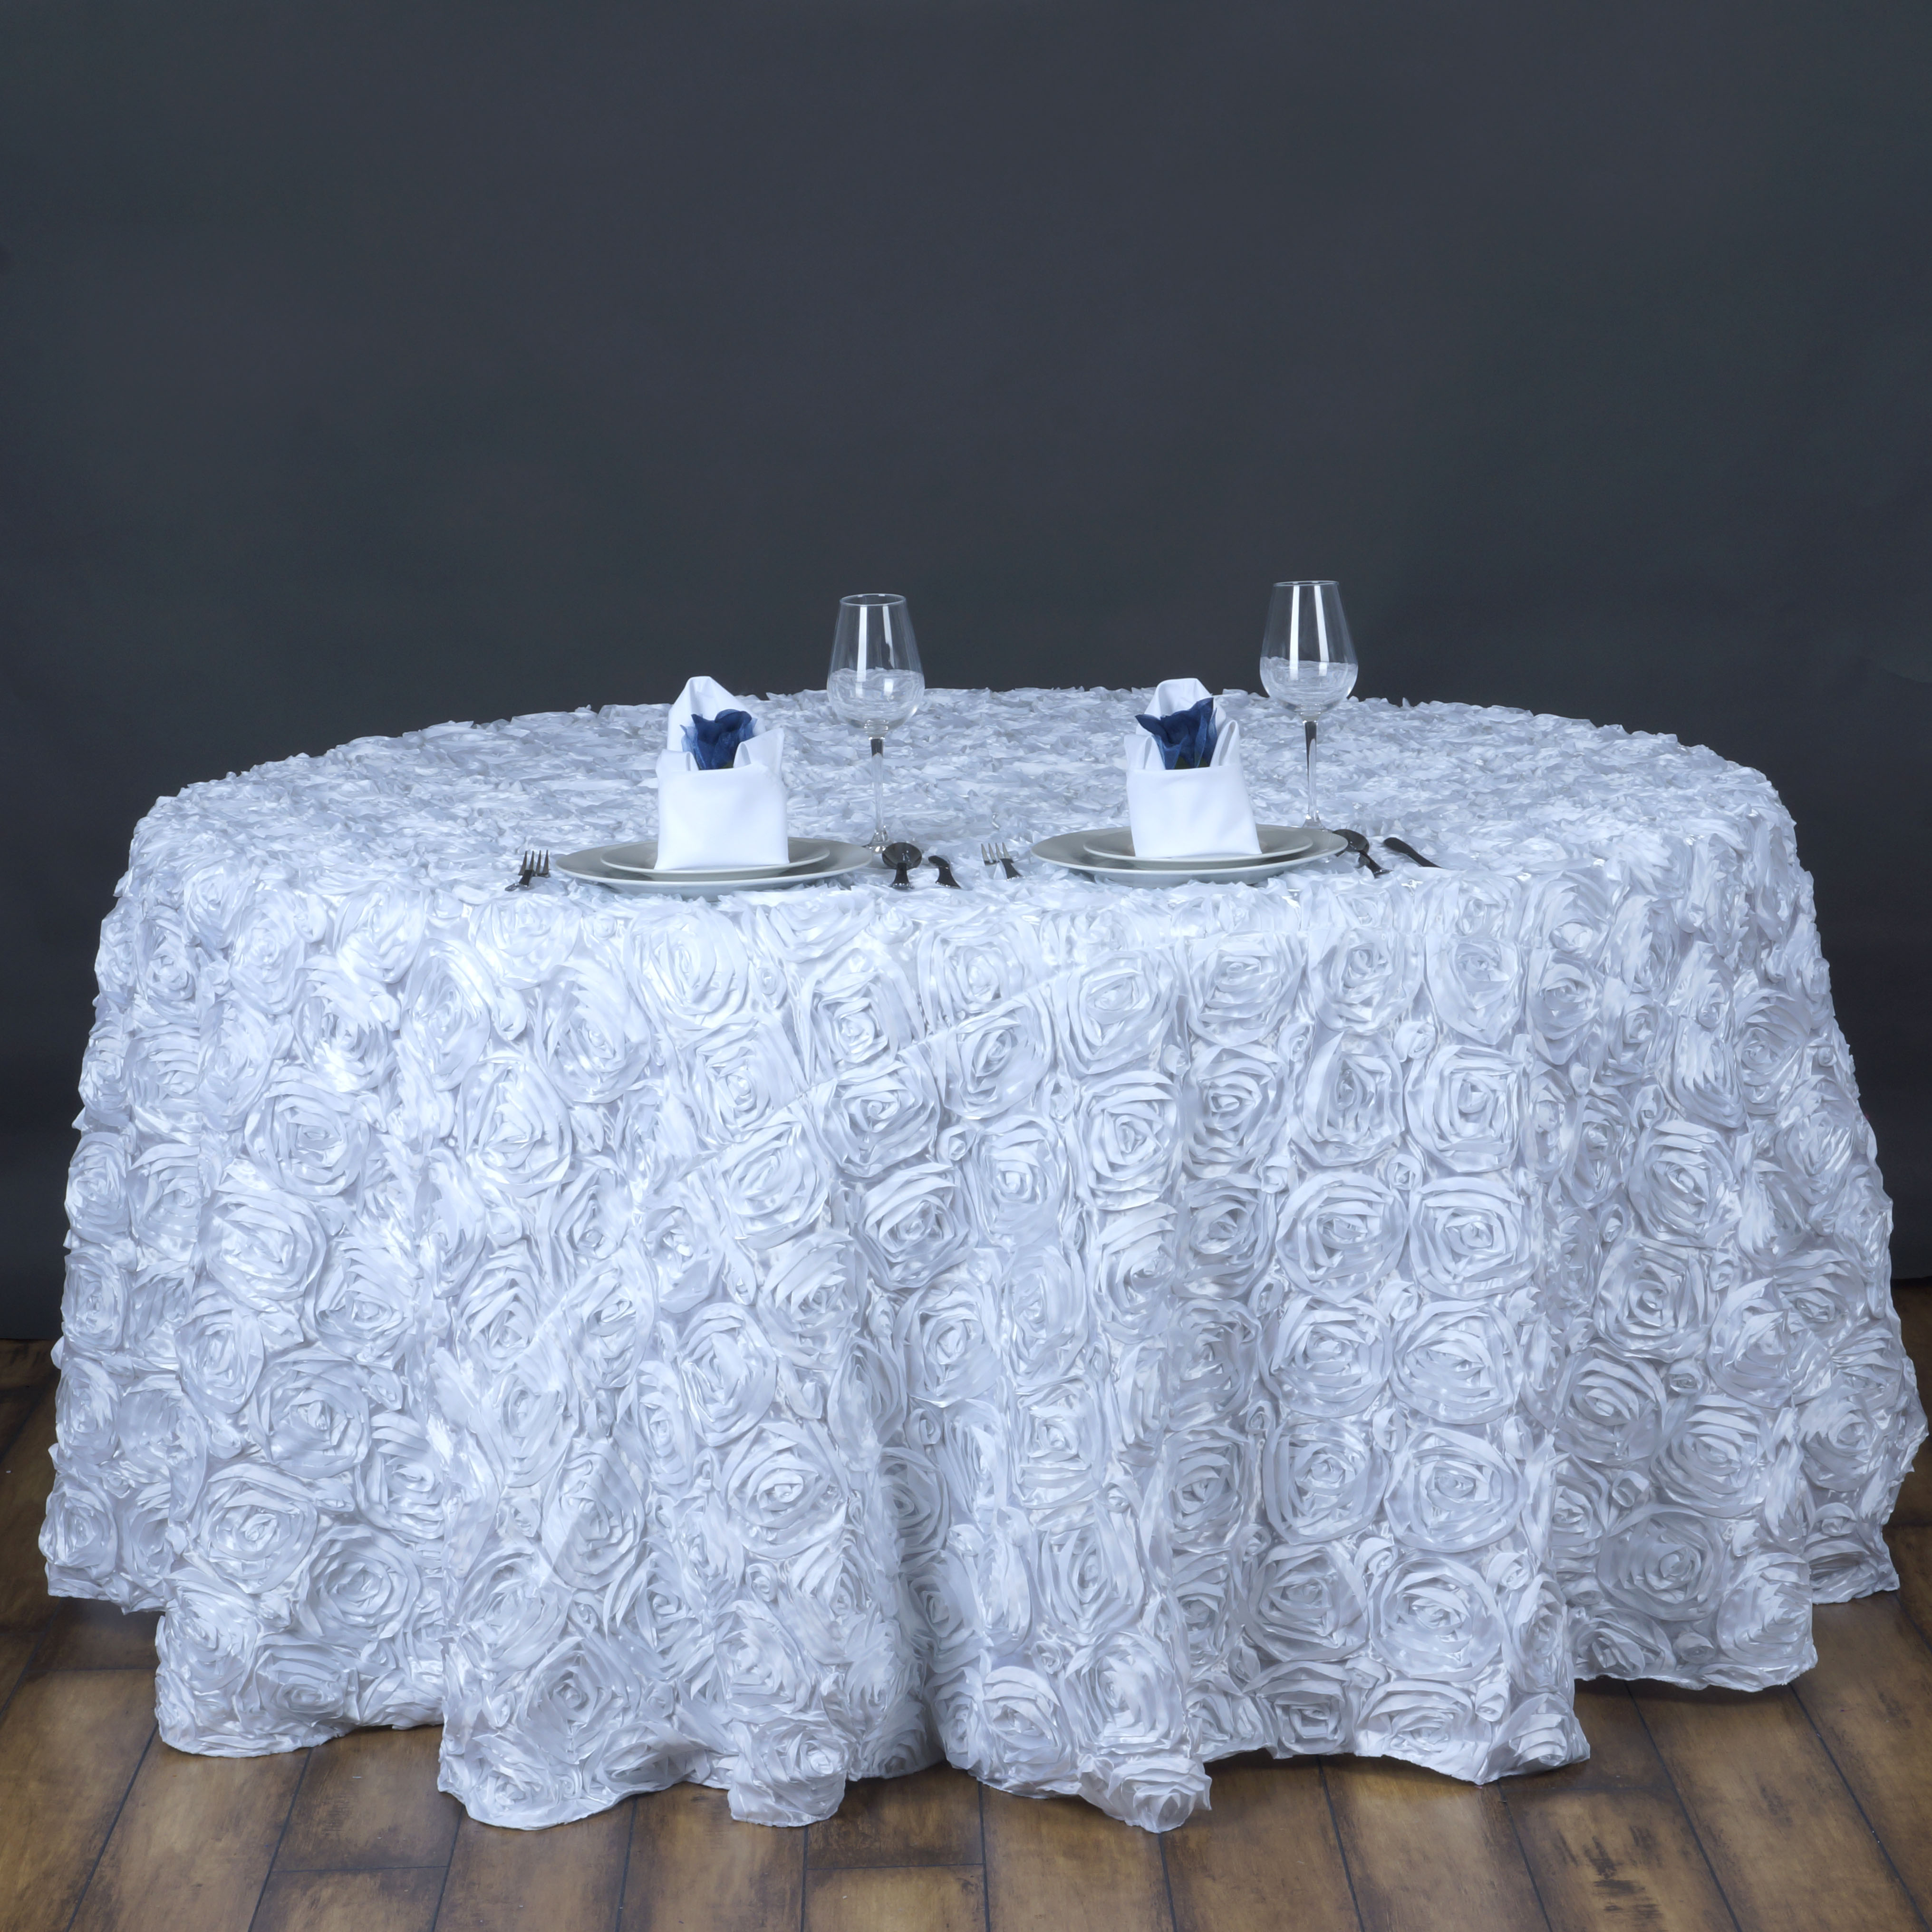 white ribbon roses 120 round tablecloth fancy wedding party catering linens ebay. Black Bedroom Furniture Sets. Home Design Ideas